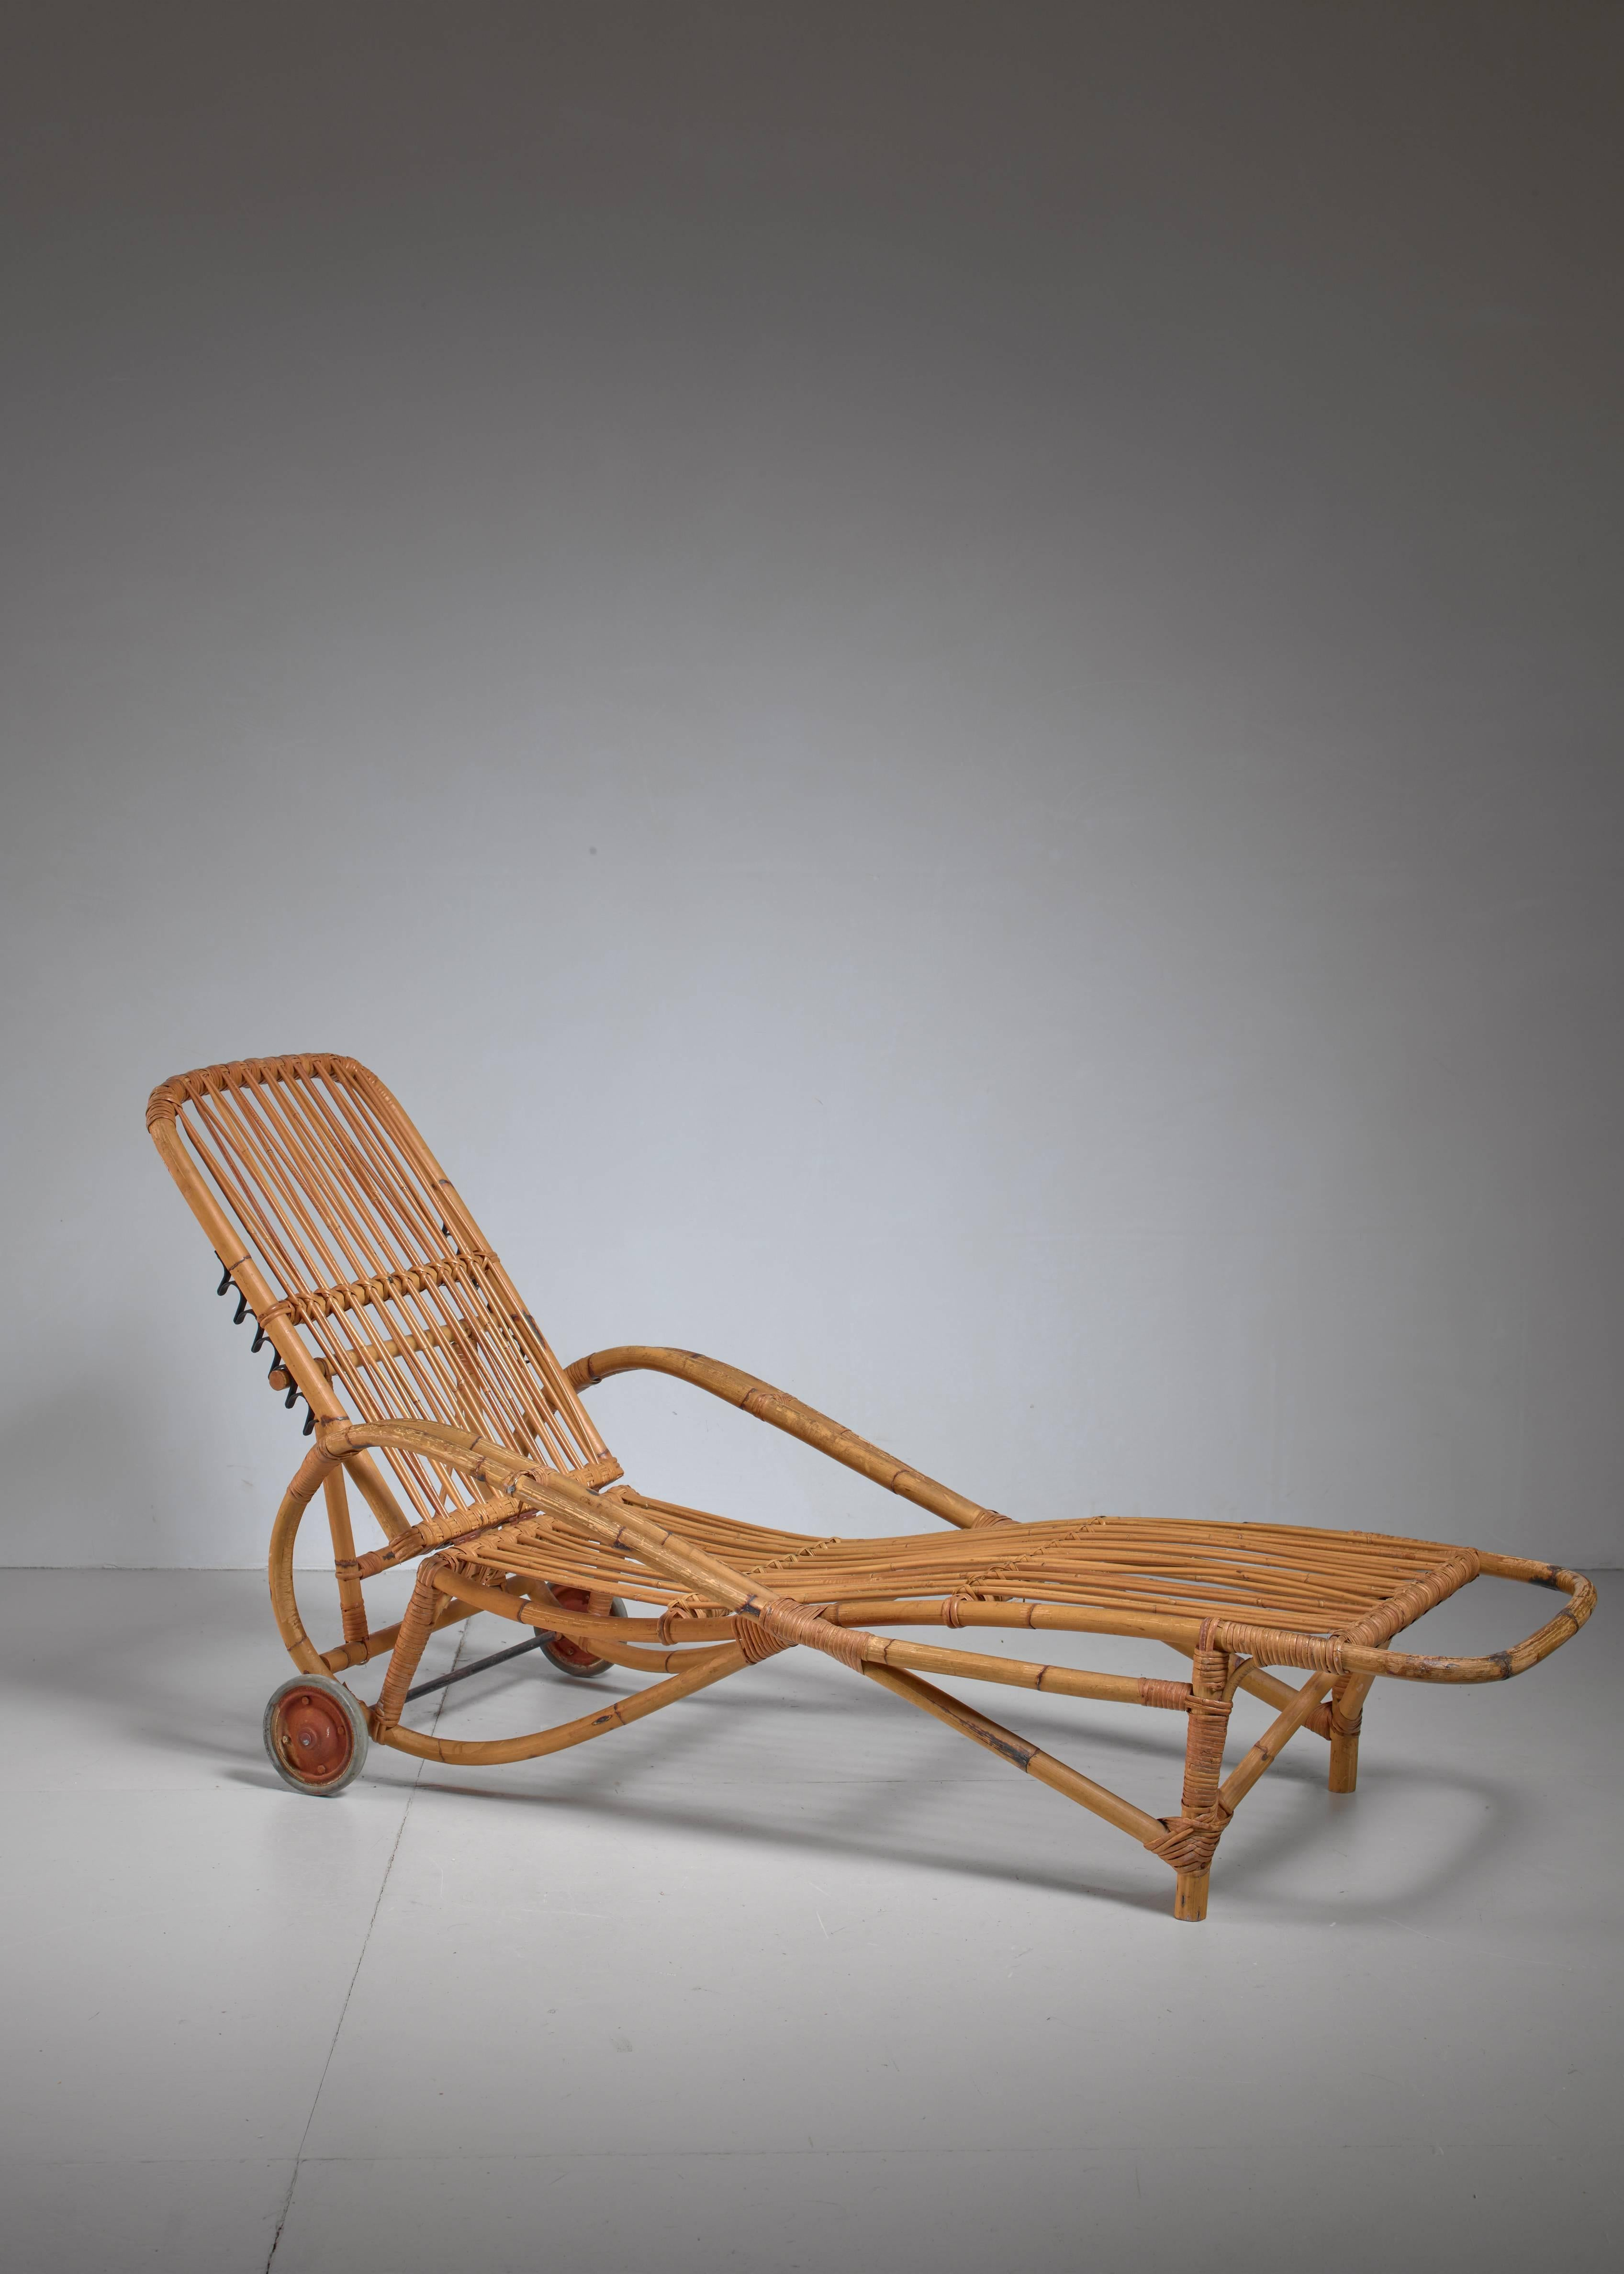 A Garden Chaise Longue Made Of Bamboo With Two Rubber Wheels, Strongly  Reminiscent Of The